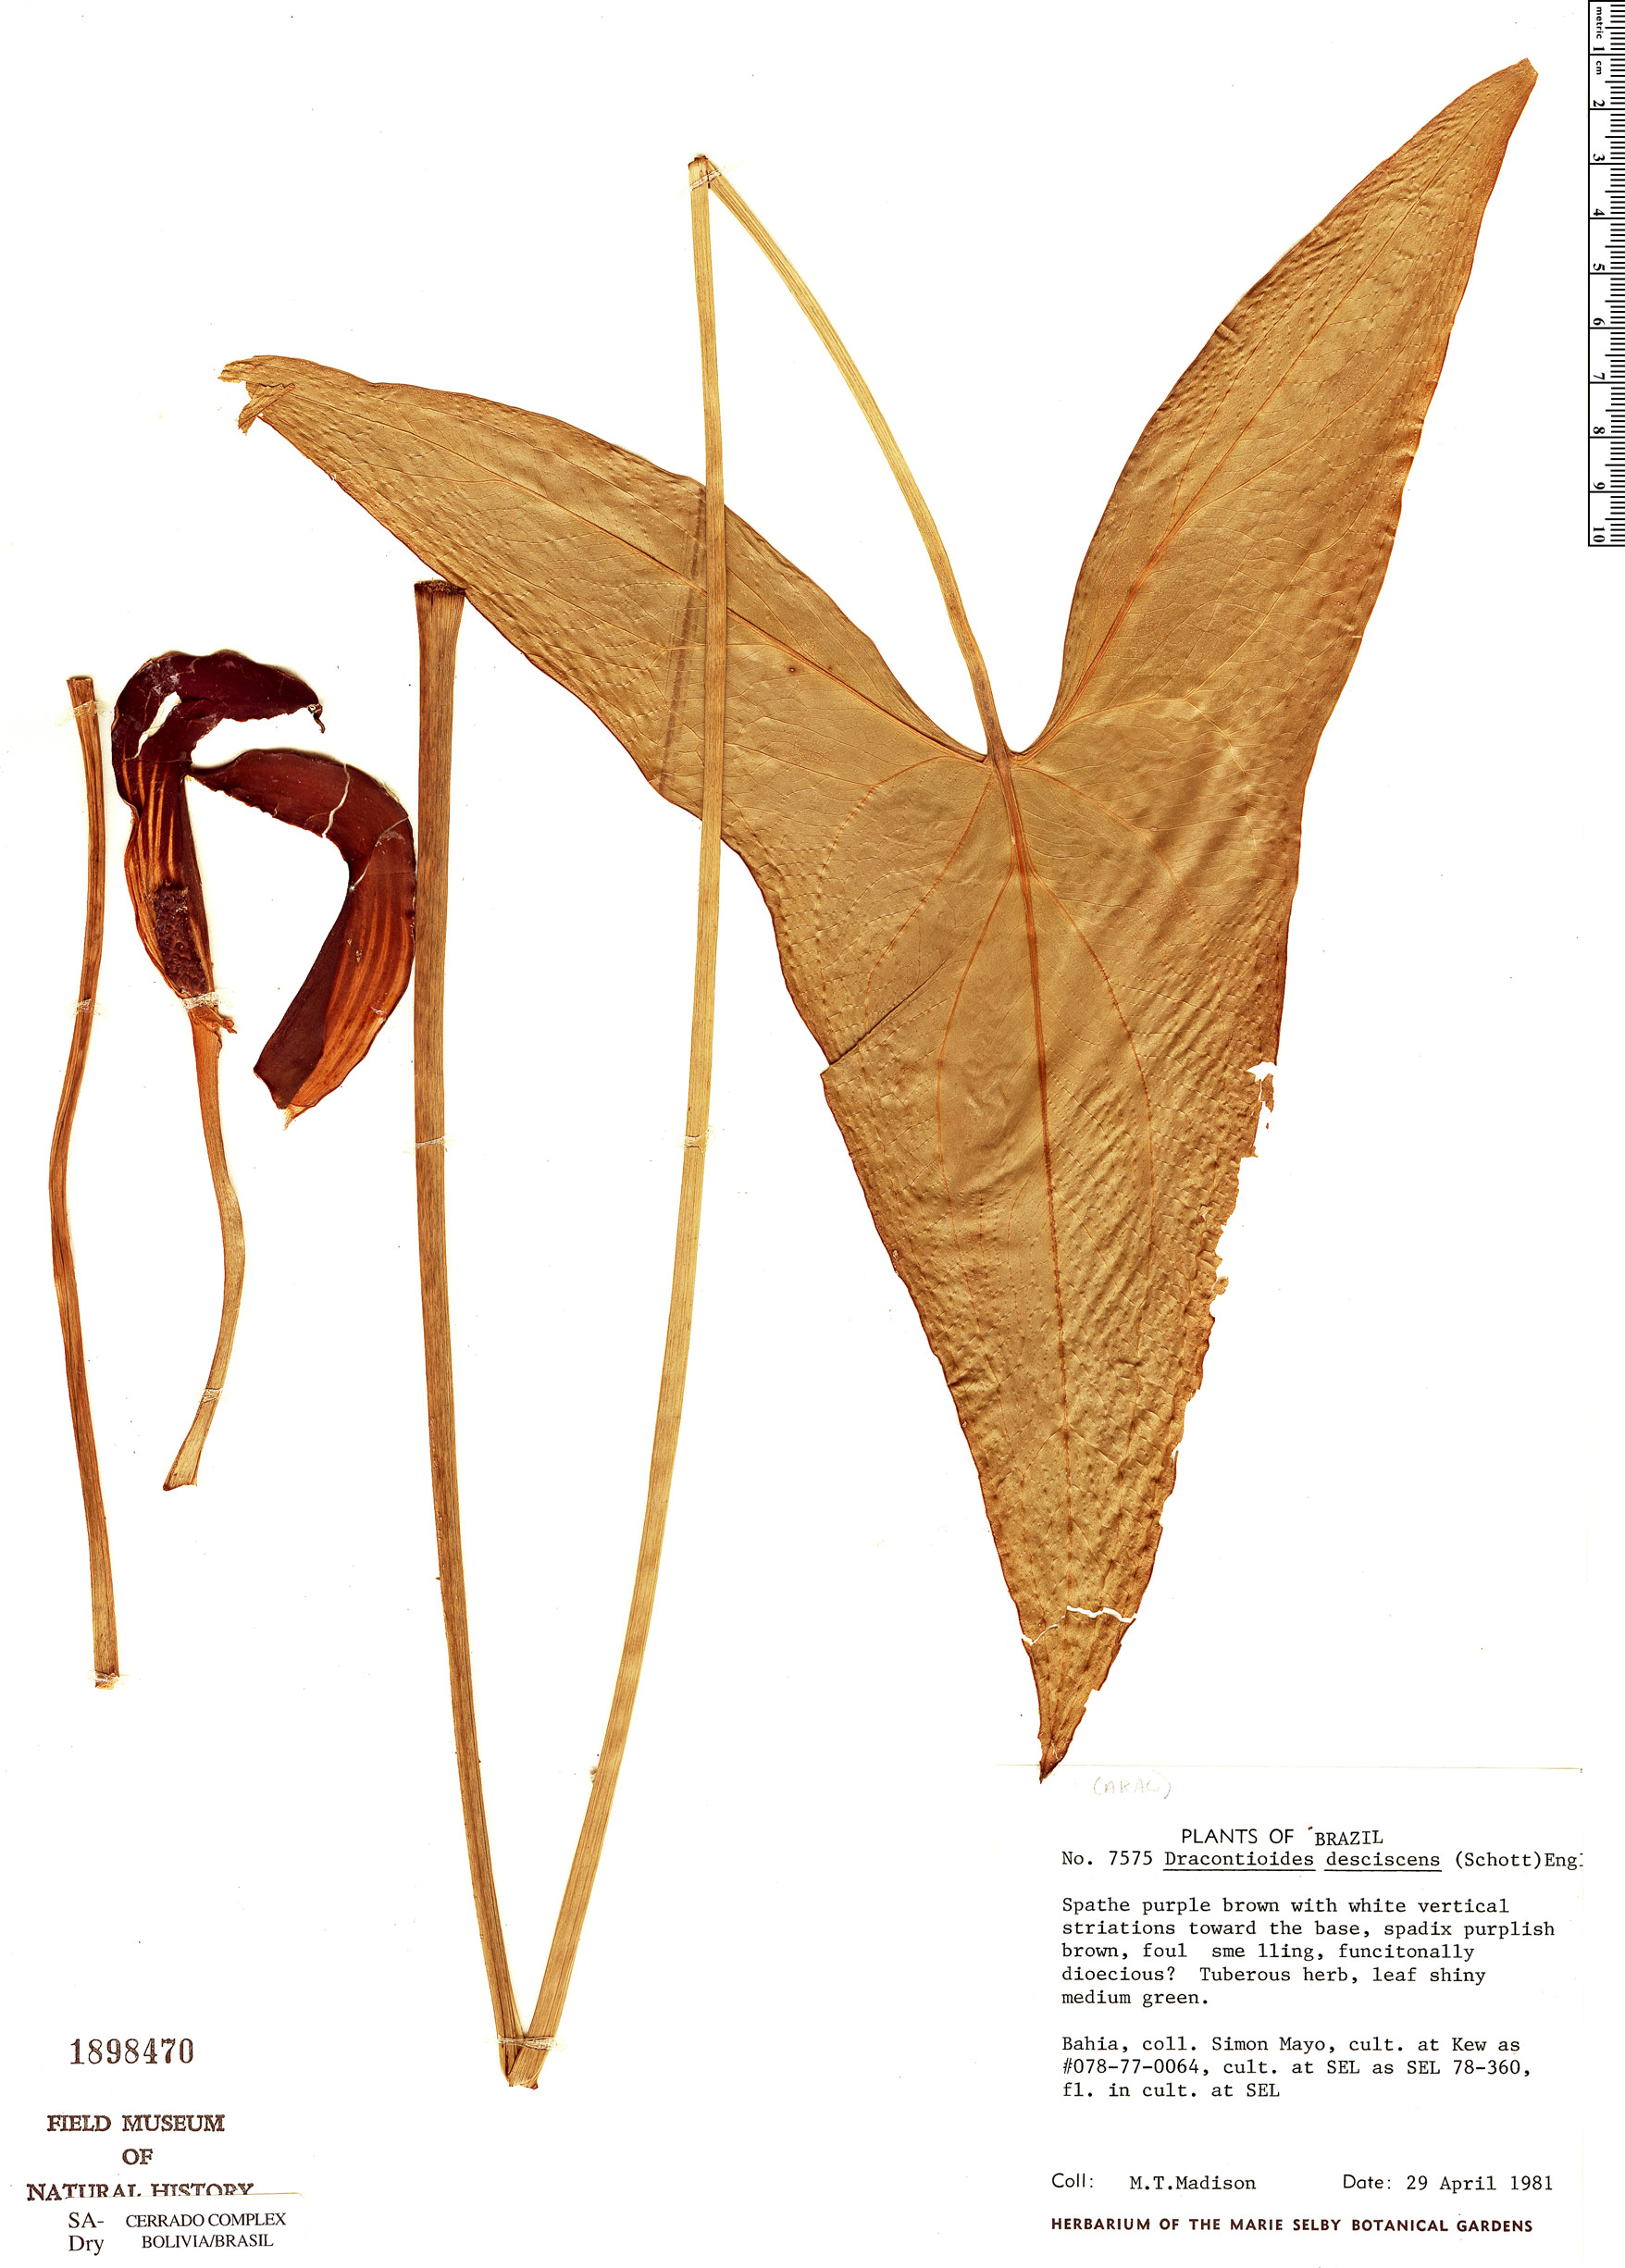 Specimen: Dracontioides desciscens